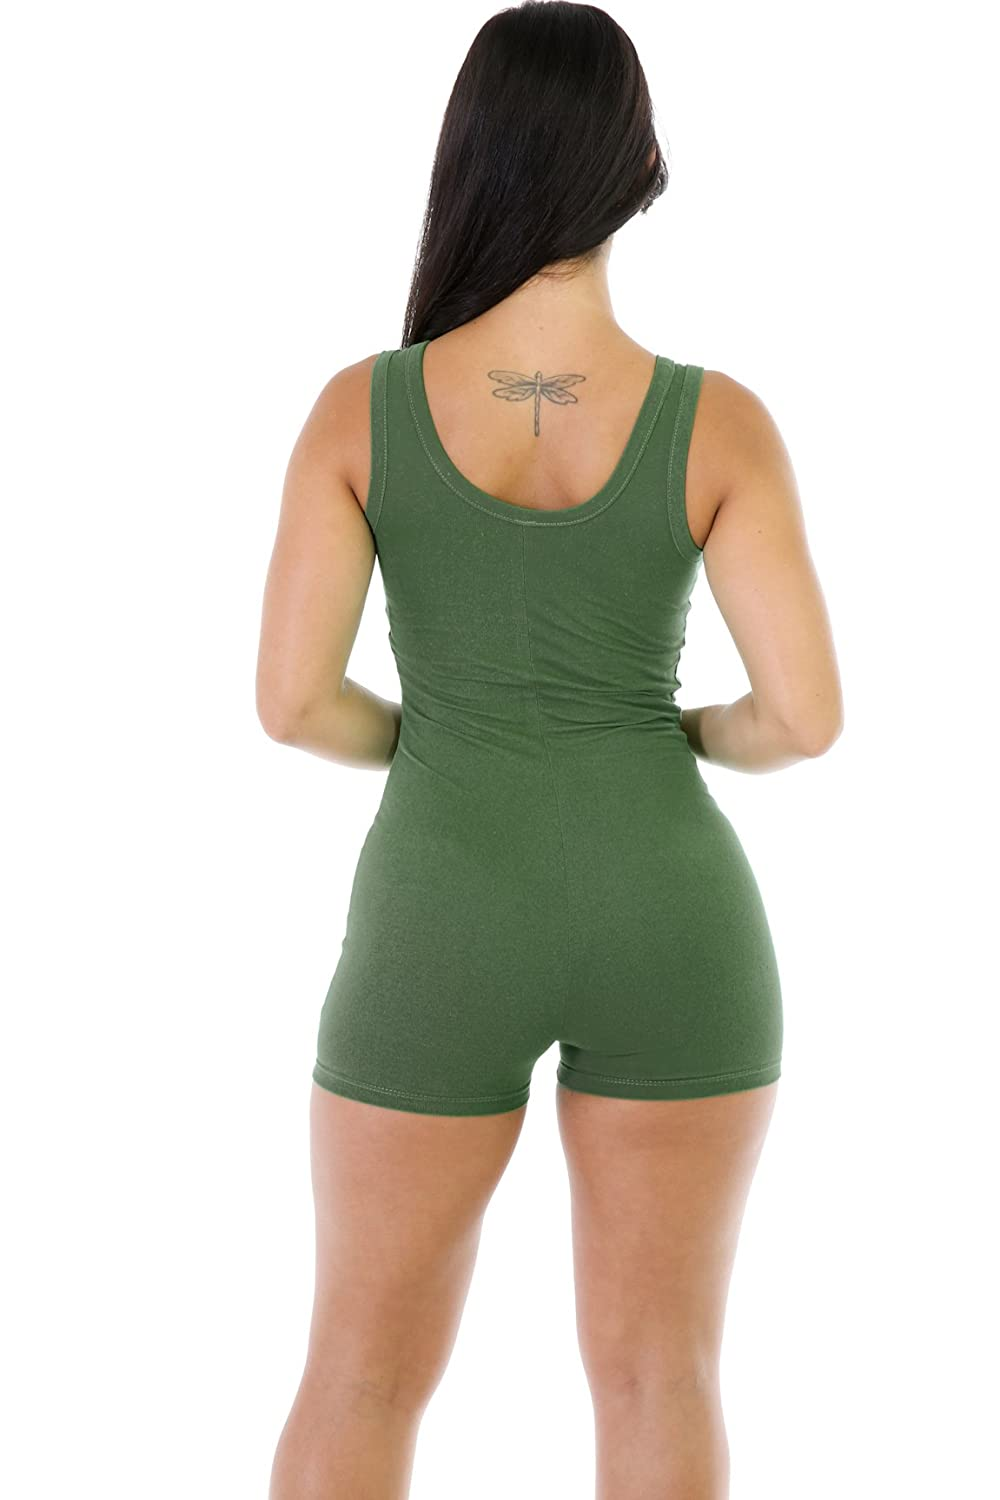 cb5737f3ee82 Amazon.com  JIMUJIMU Women s Sexy Sleeveless Tank Tops Short Romper Sports  Jumpsuit Bodysuit One Piece Short Catsuit  Clothing